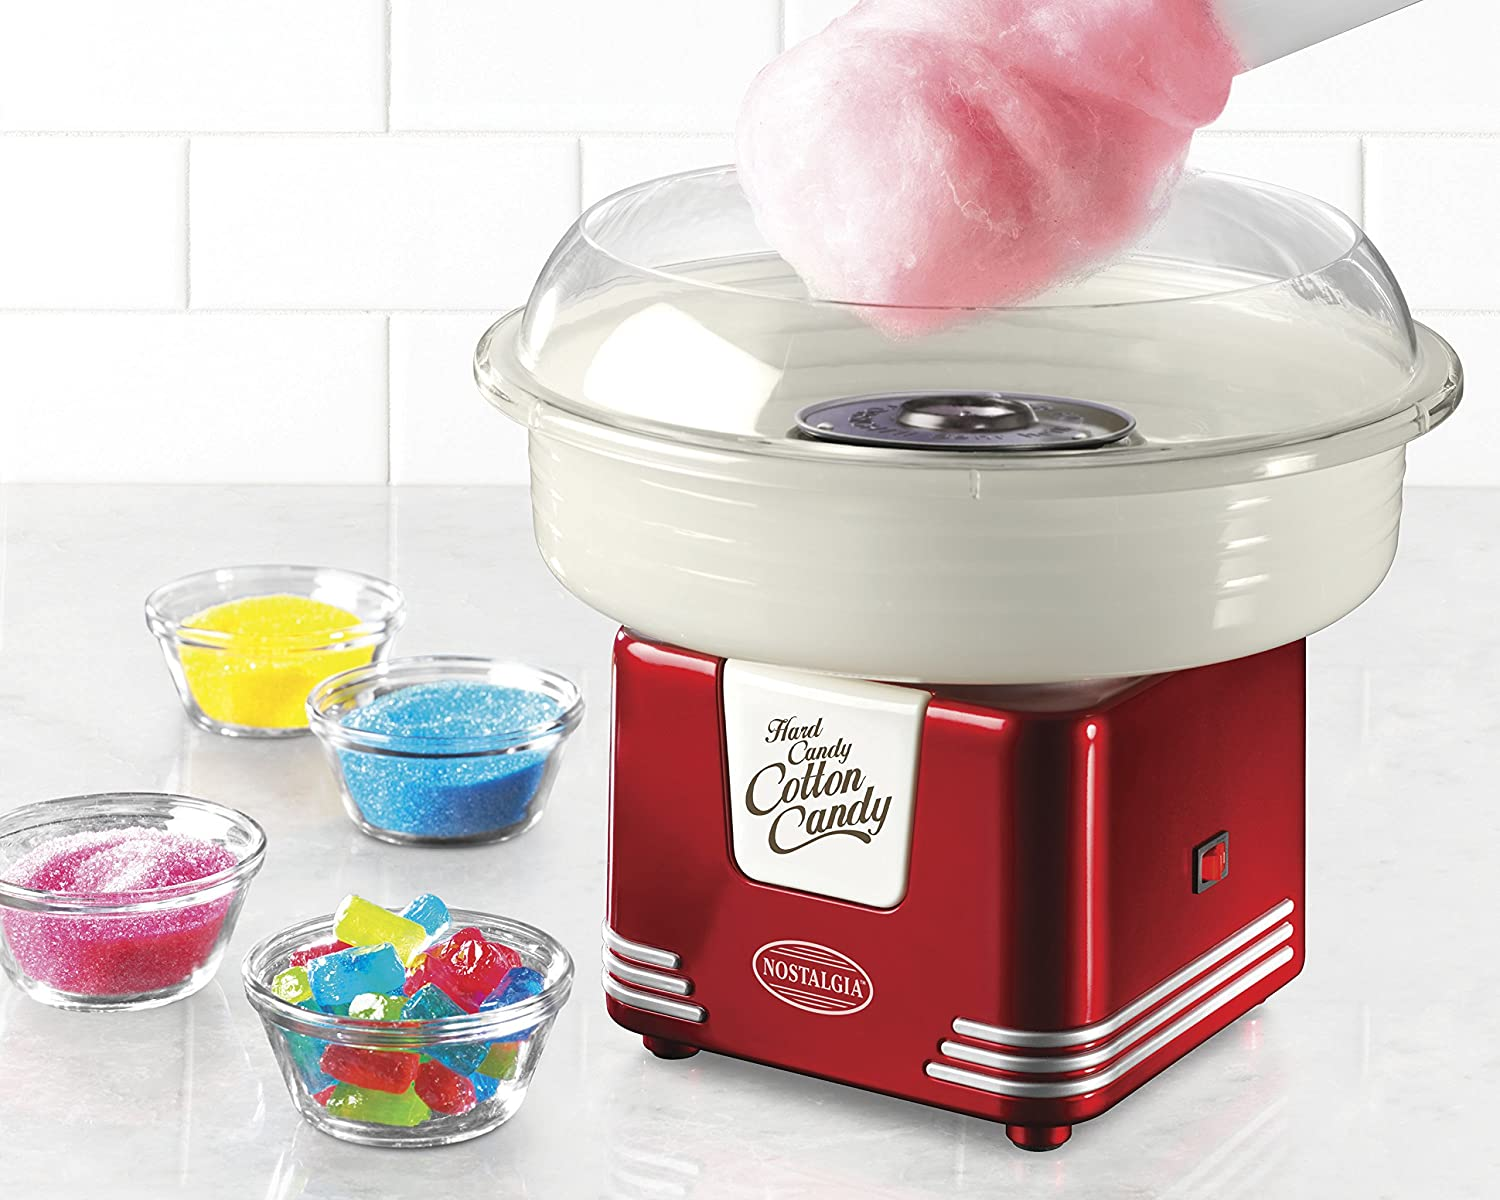 Nostalgia Retro Candy Cotton Candy Maker